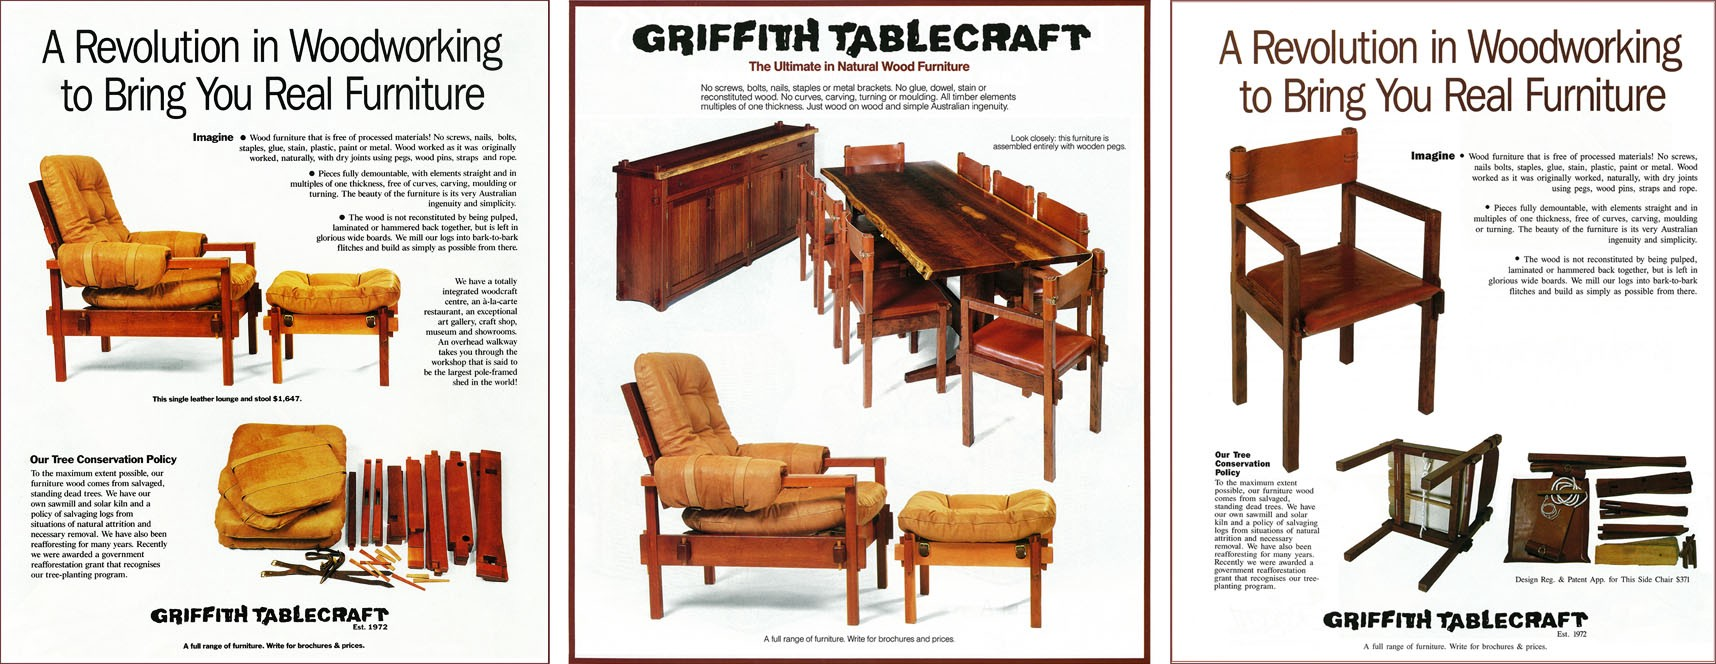 Griffith Tablecraft advertisements that appeared in various magazines